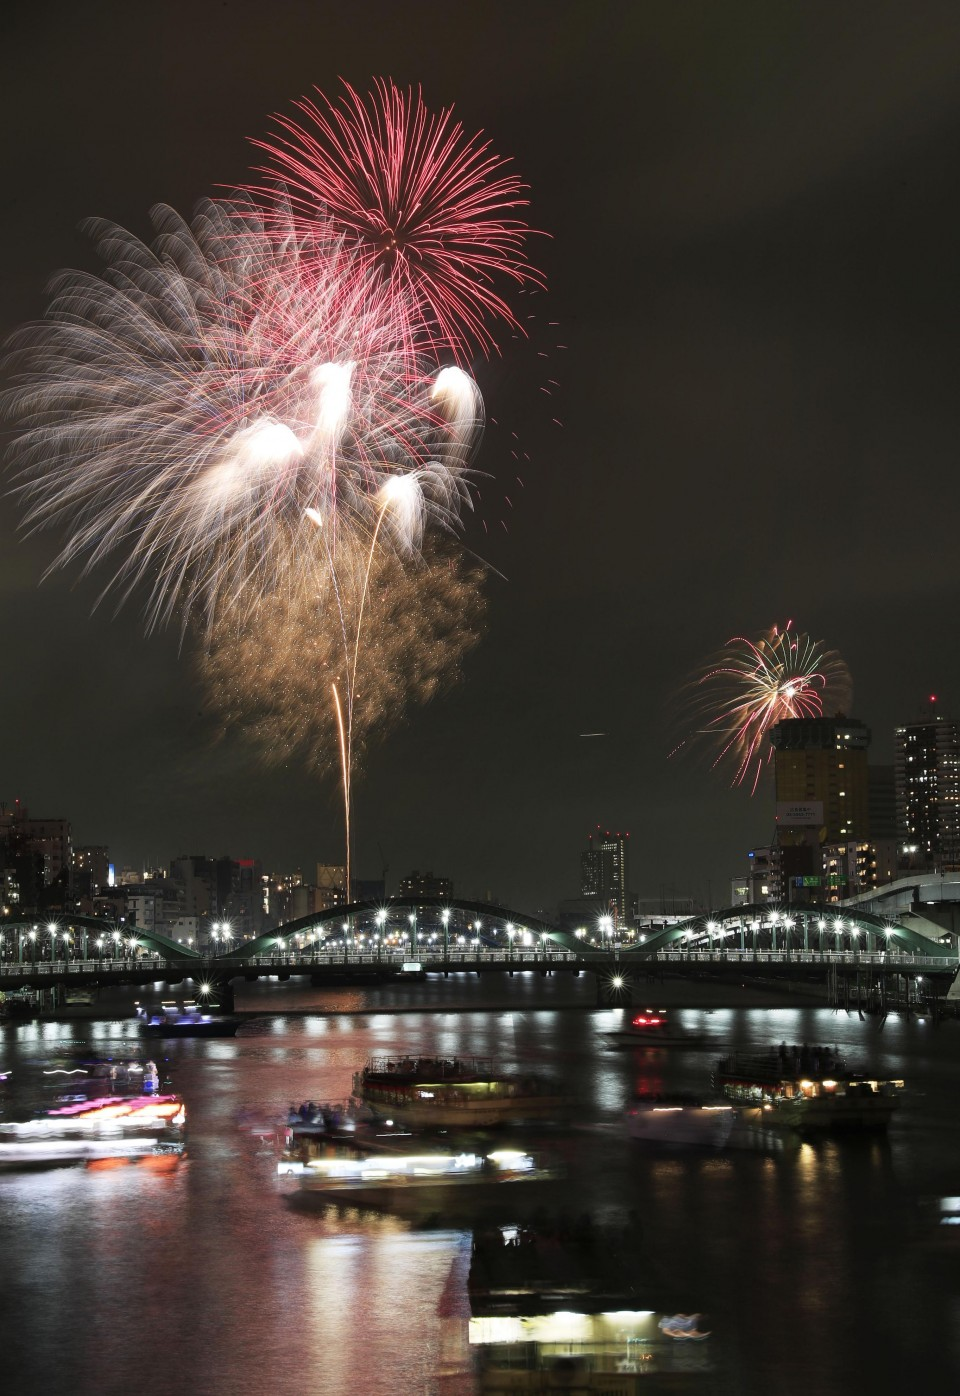 Fewer fireworks events in Japan next summer due to Olympics photo